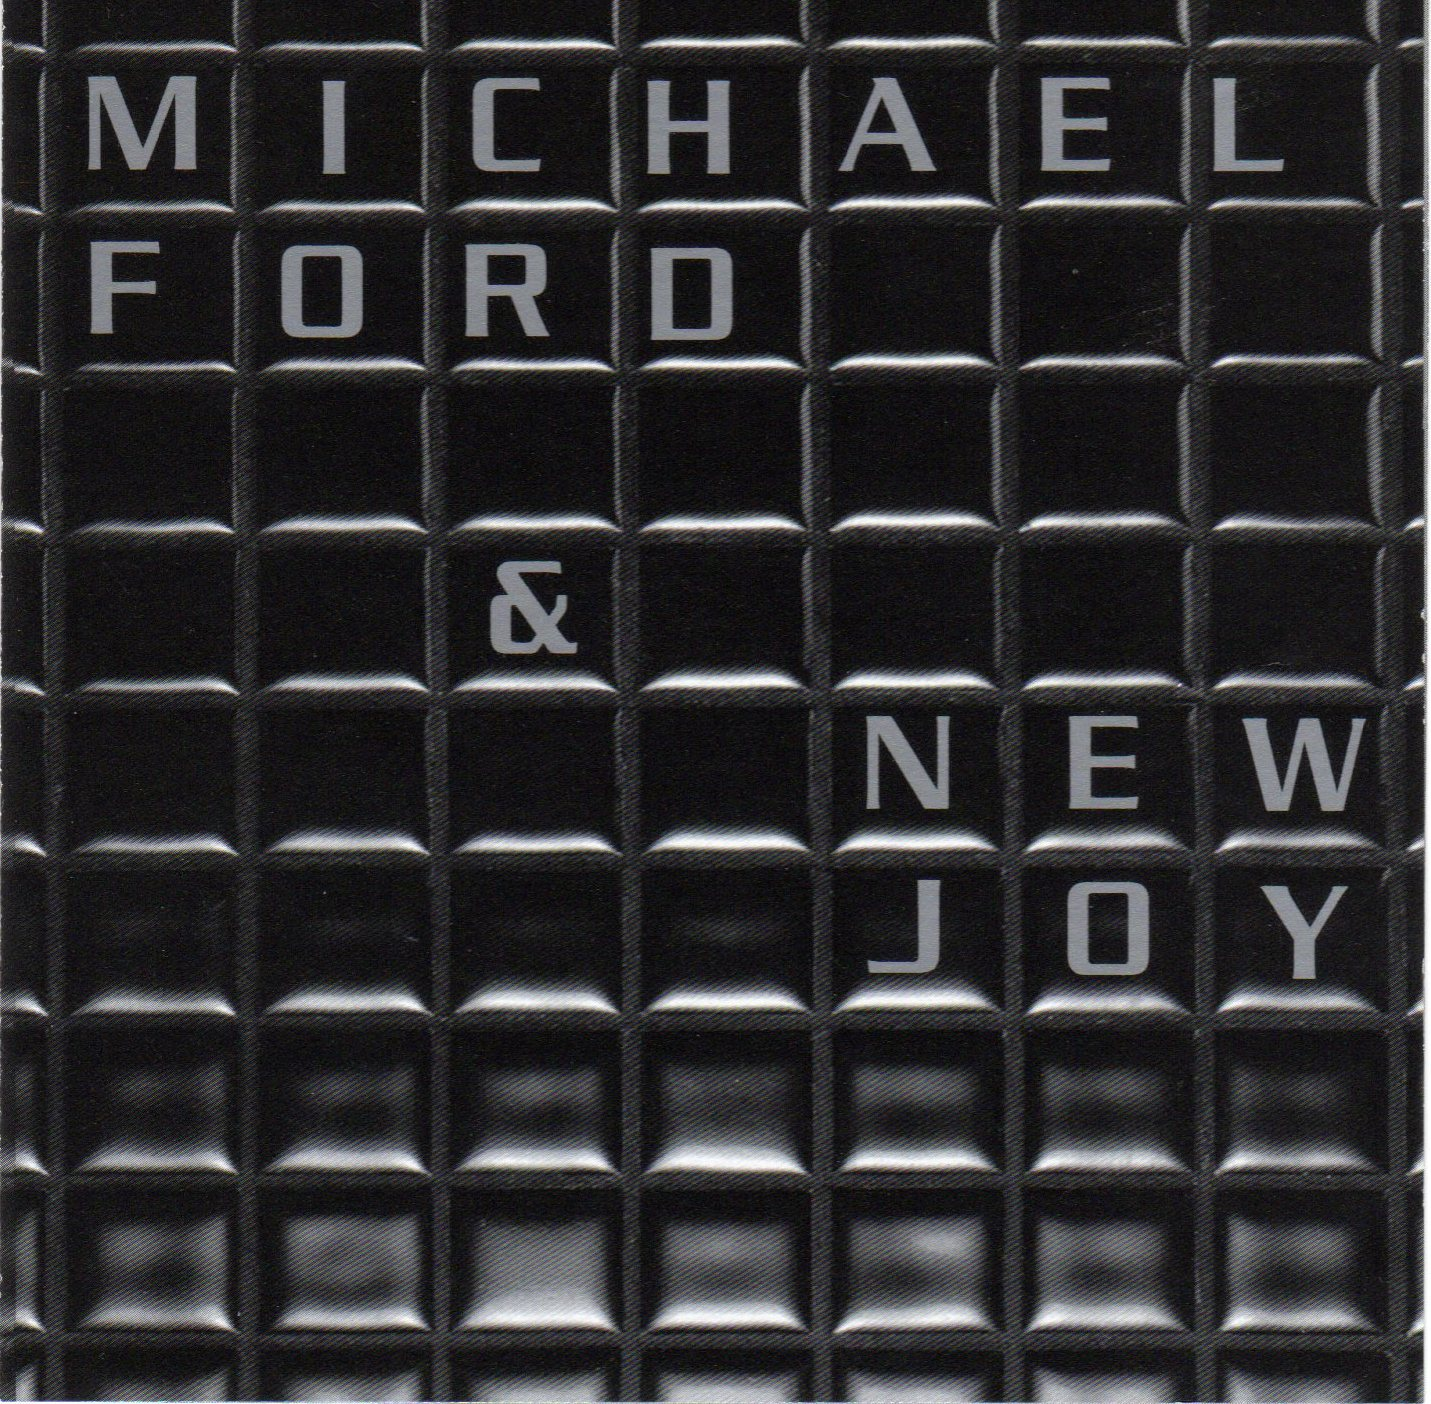 michael ford and new joy.jpg